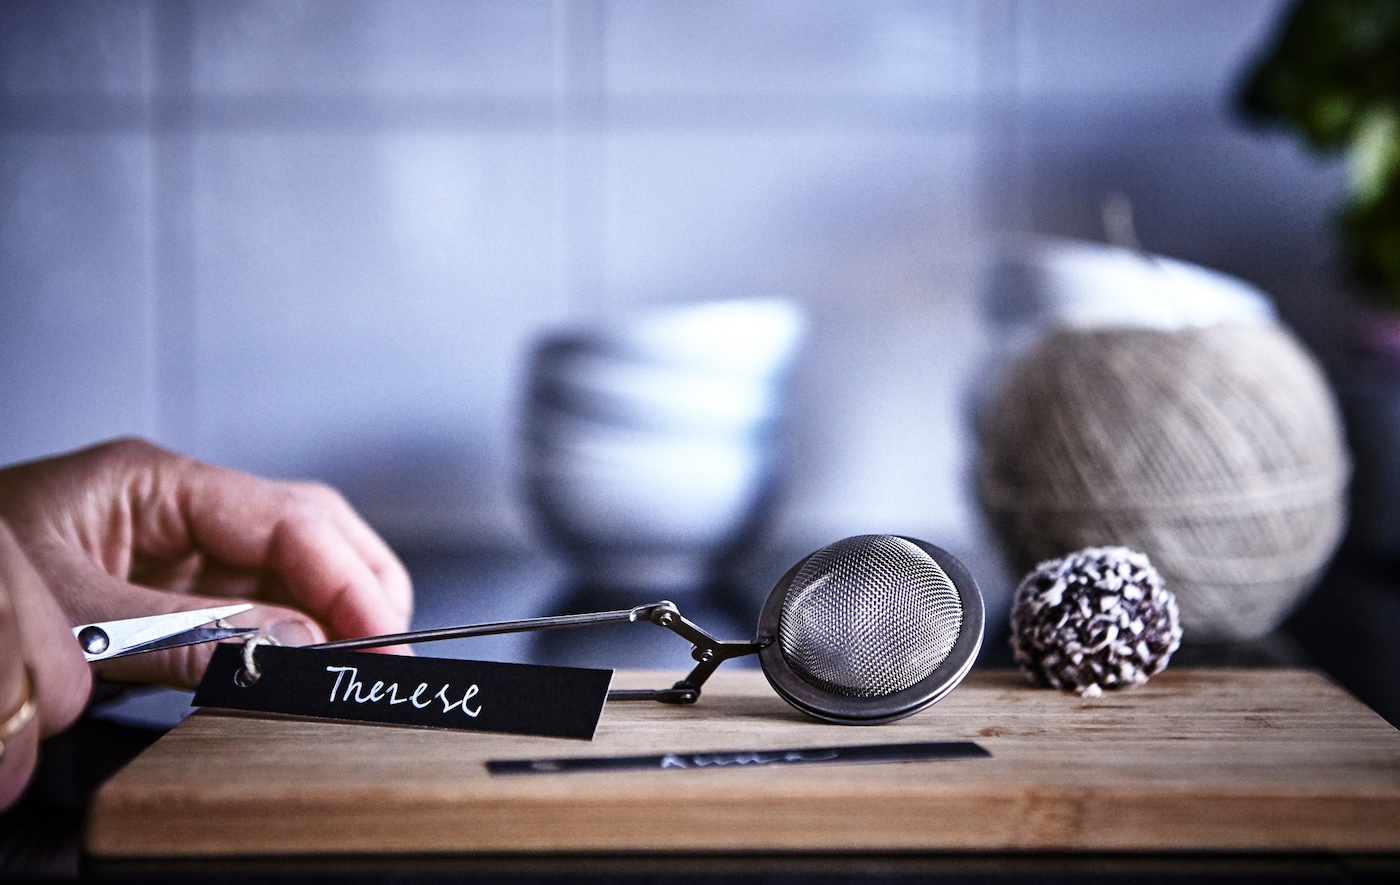 A close-up of someone tying a name tag onto an IKEA IDEALISK tea infuser.